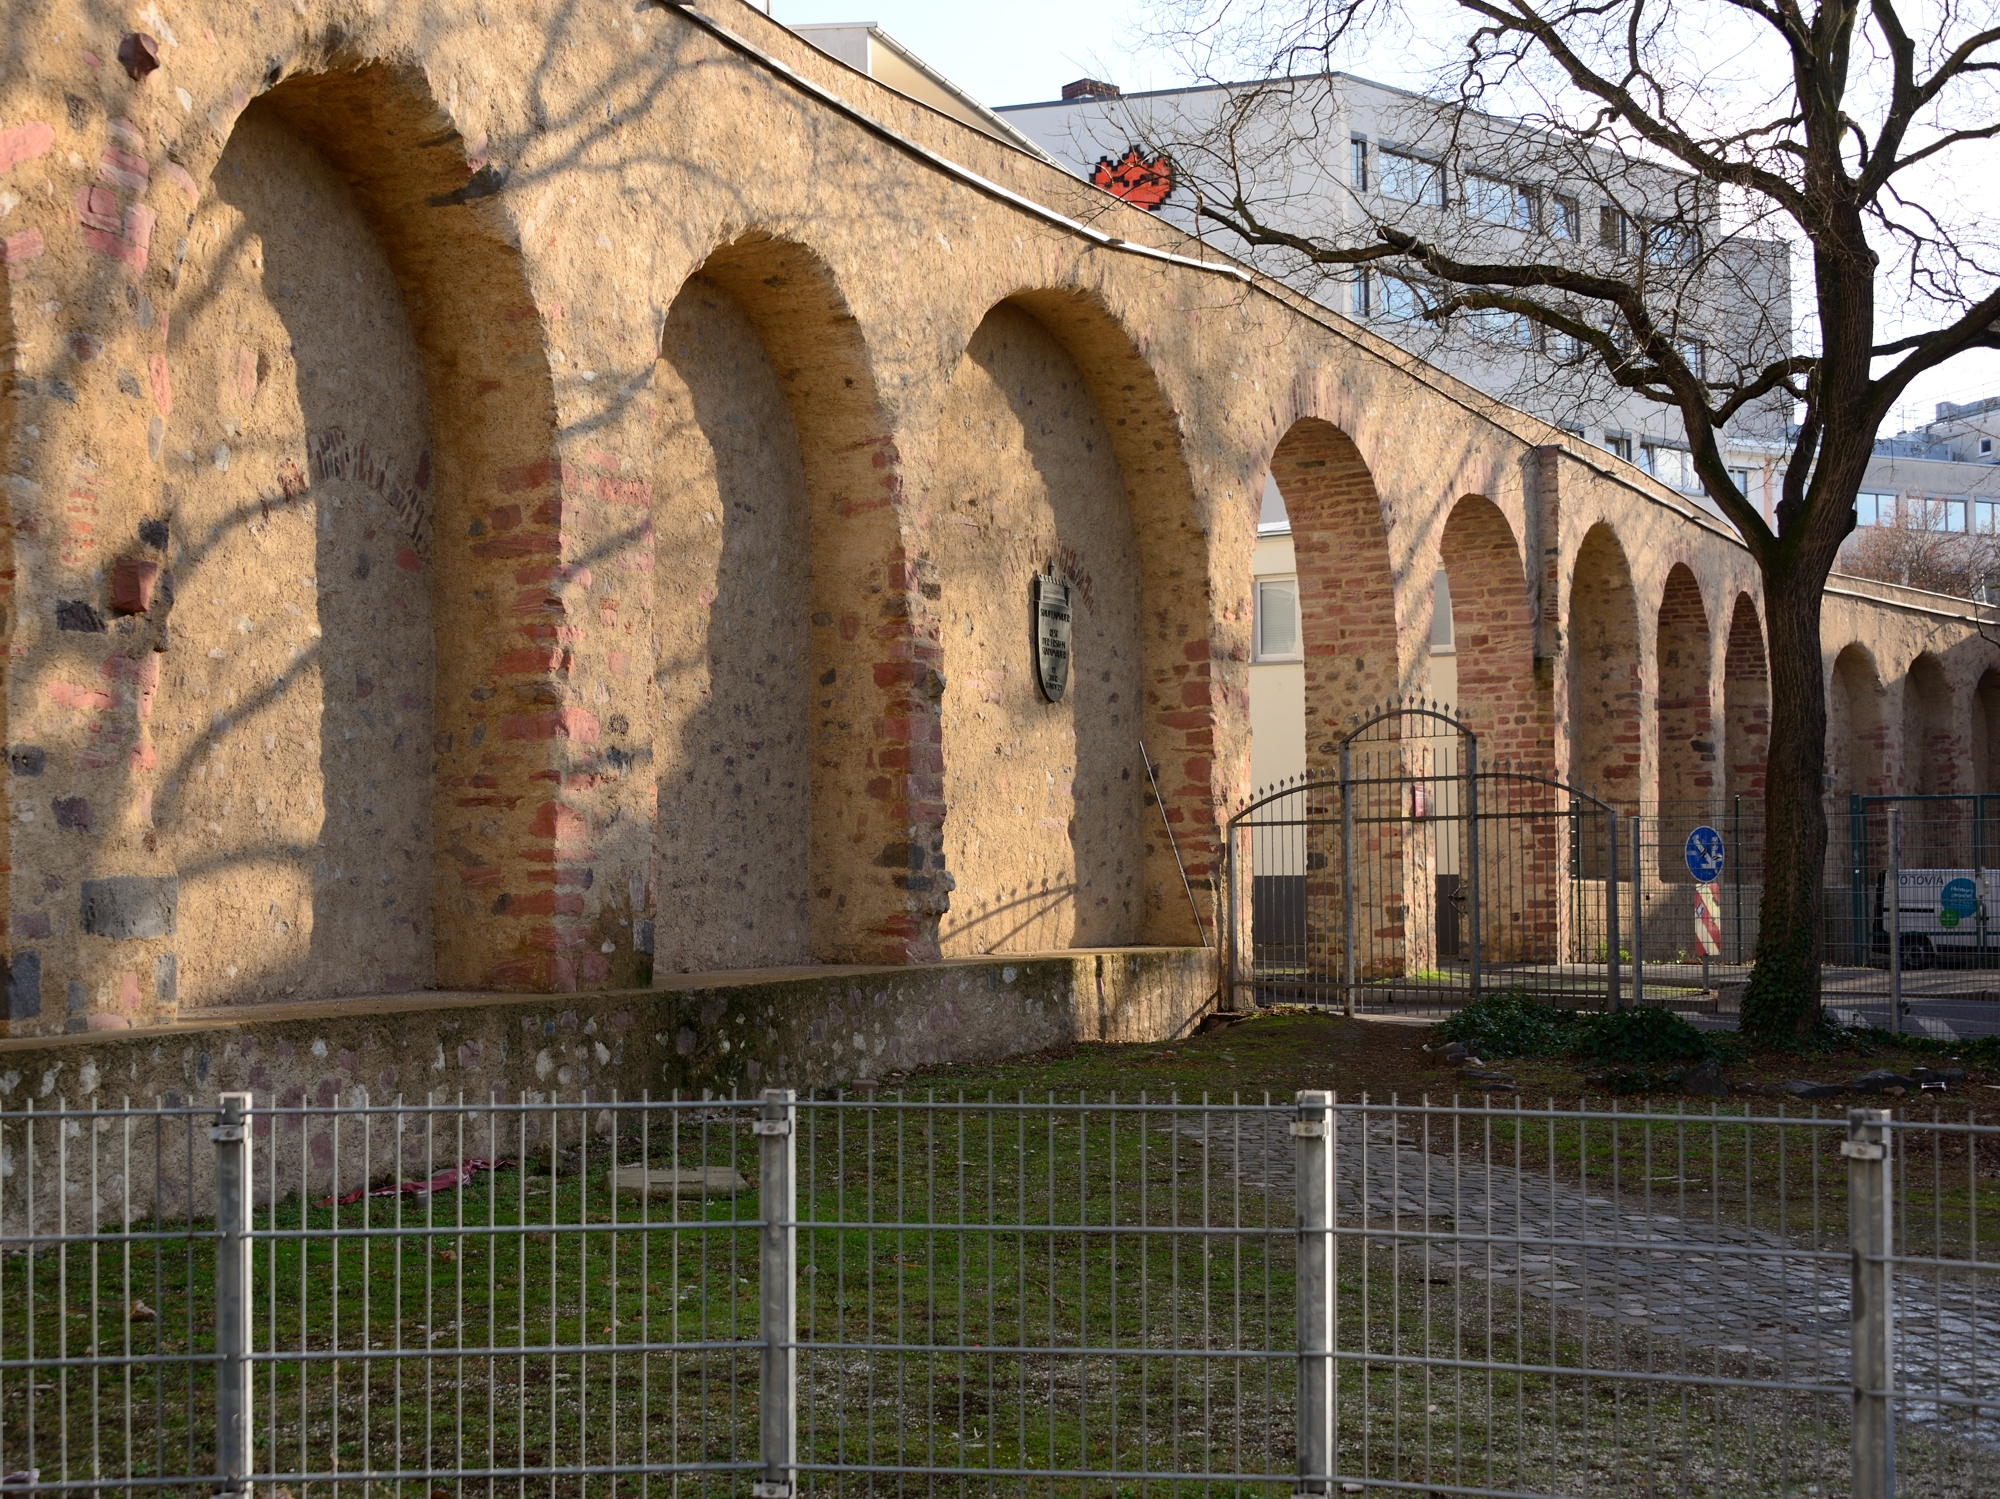 An der Staufenmauer, at the junction of Fahrgasse and Töngesgasse